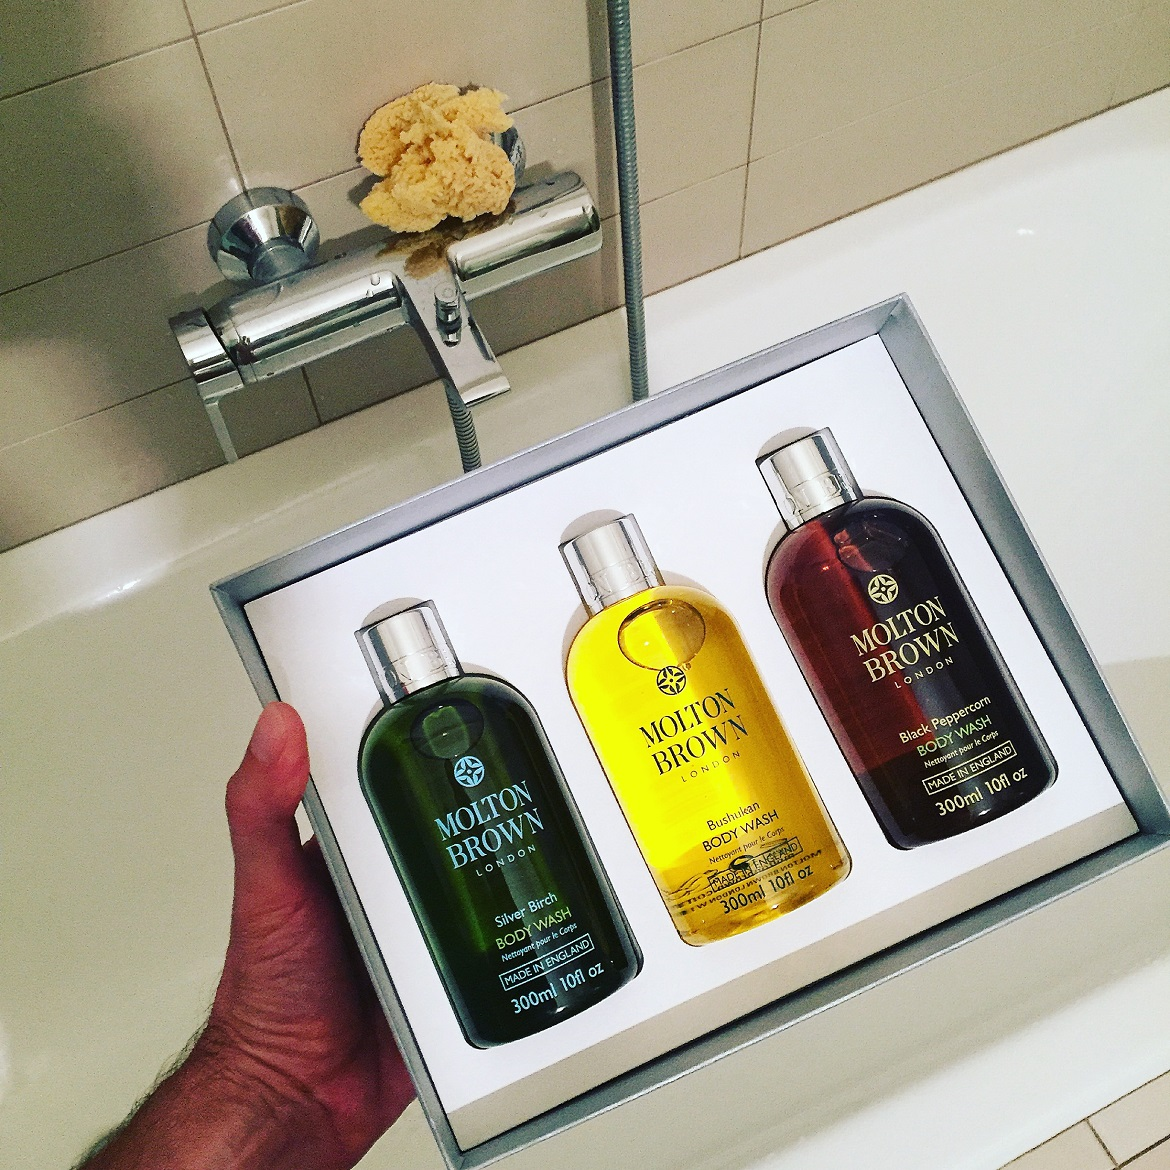 A gift-pack of 3 best-sellers for men (Silver Burch, Bushukan, Black Peppercorn) ideal for Xmas pampering!